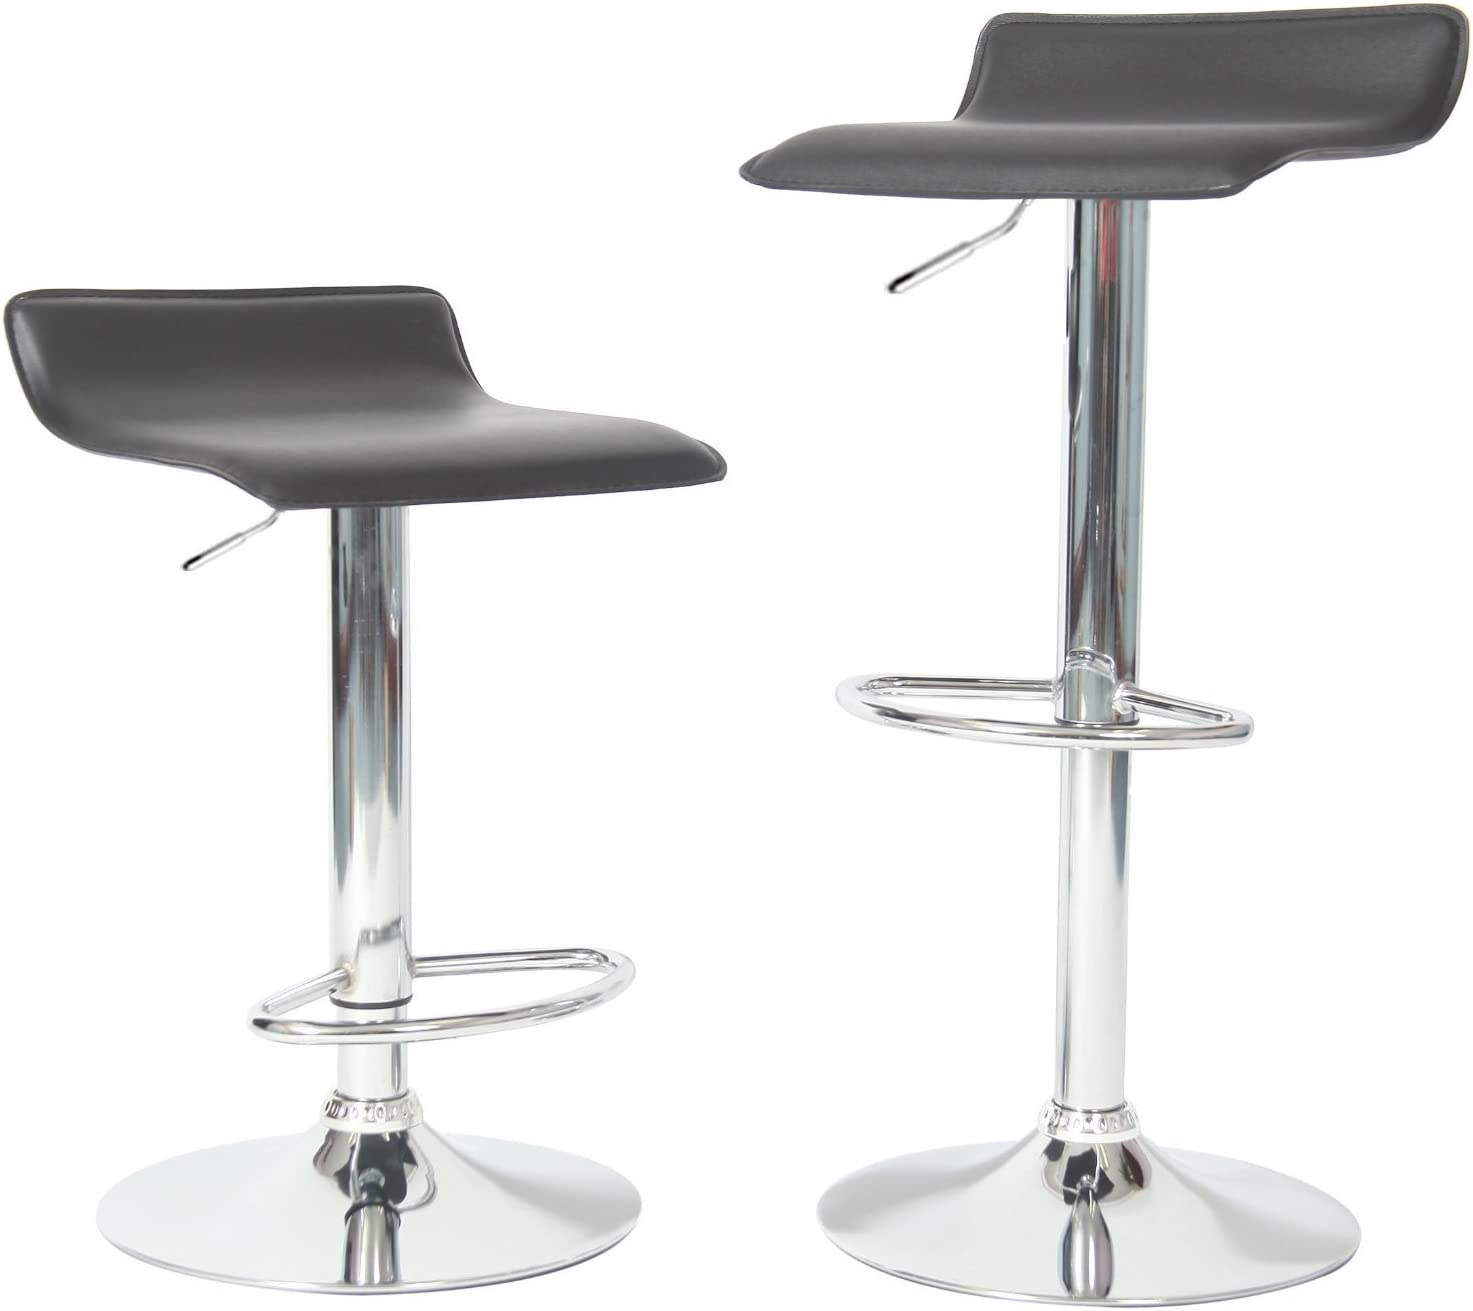 Roundhill Furniture Contemporary Chrome Air Lift Adjustable Swivel Stools with Black Seat, Set of 2